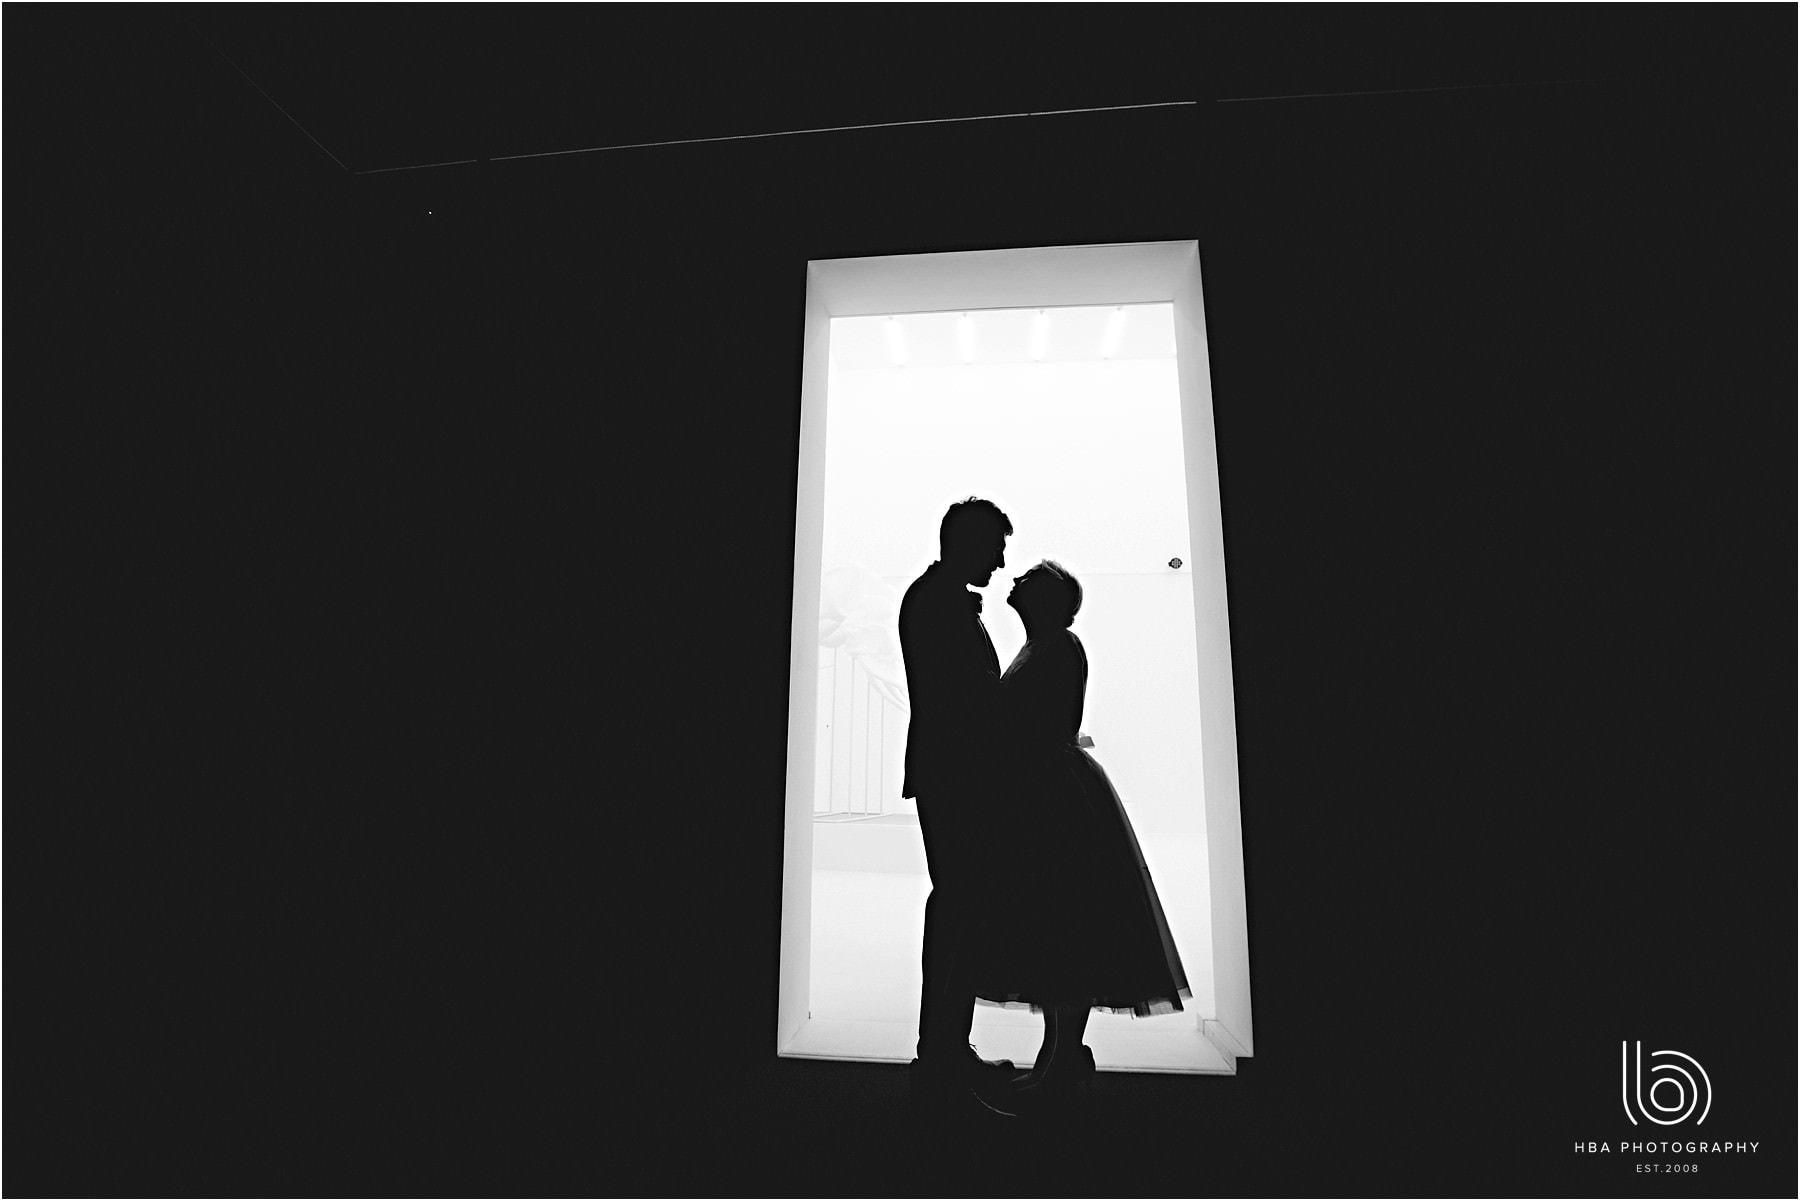 The bride and groom in silhouette looking at each other